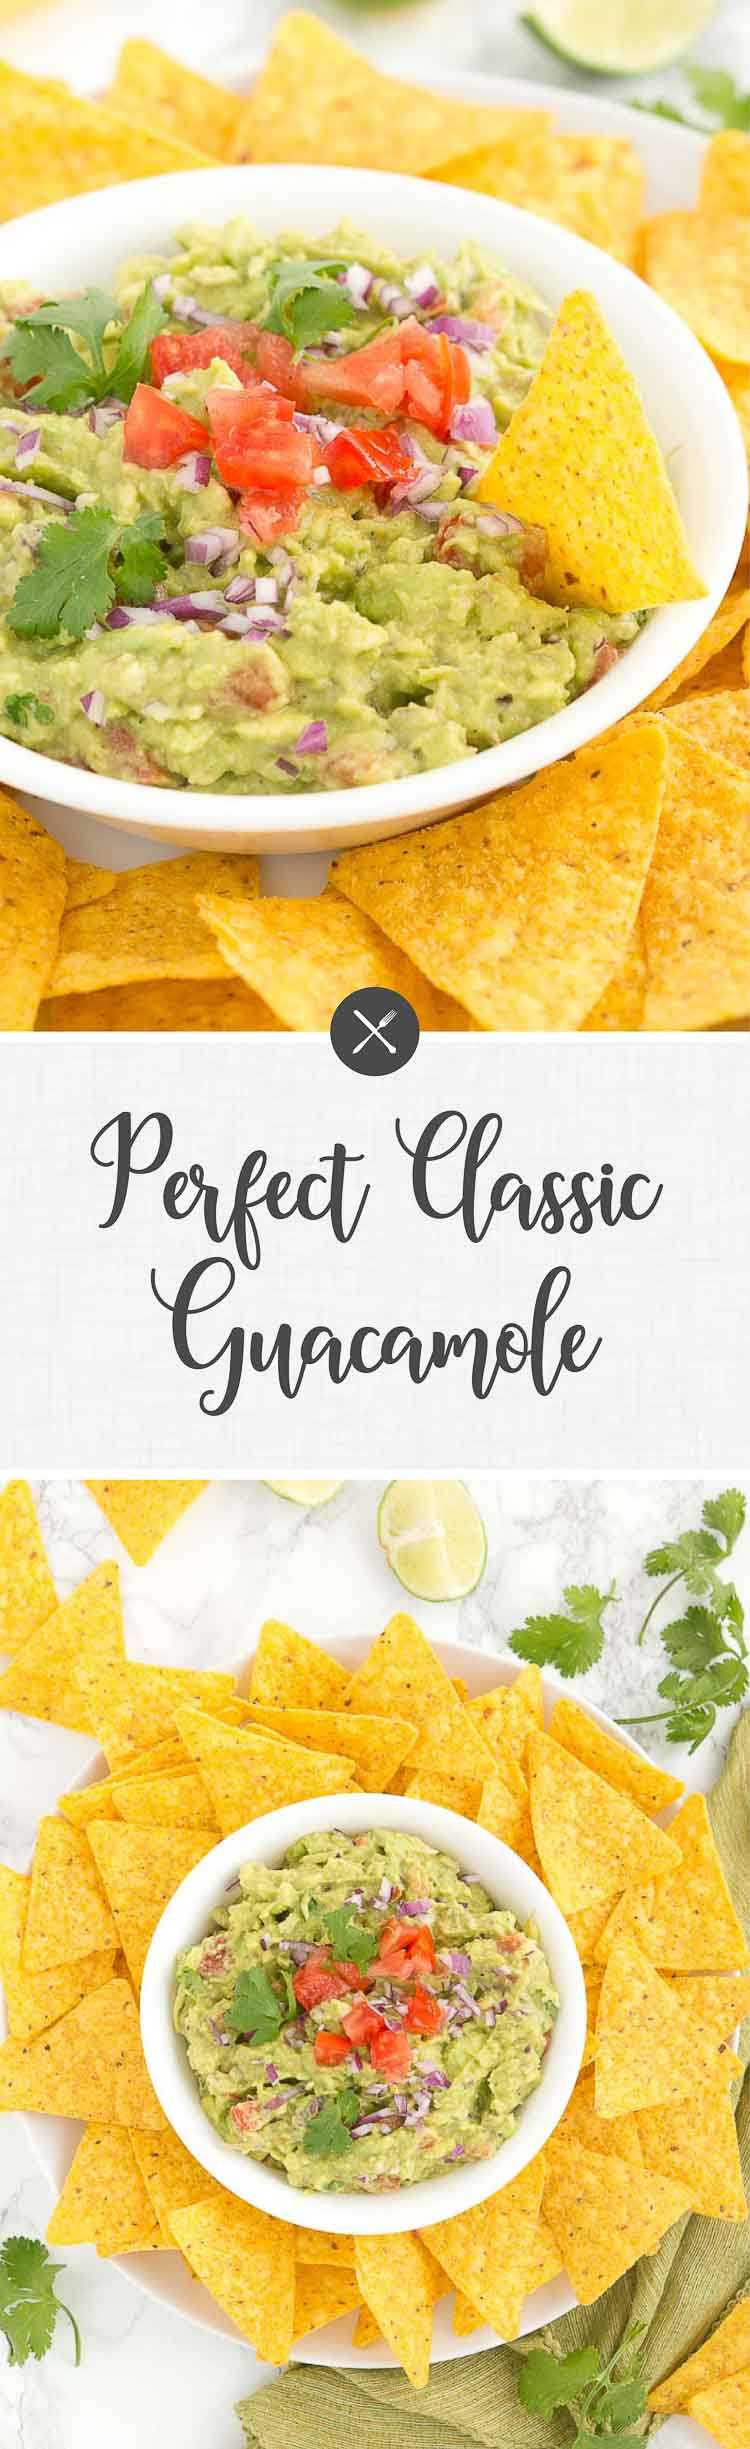 Try this perfect classic guacamole - very easy and quick to make. You will never need another guacamole recipe